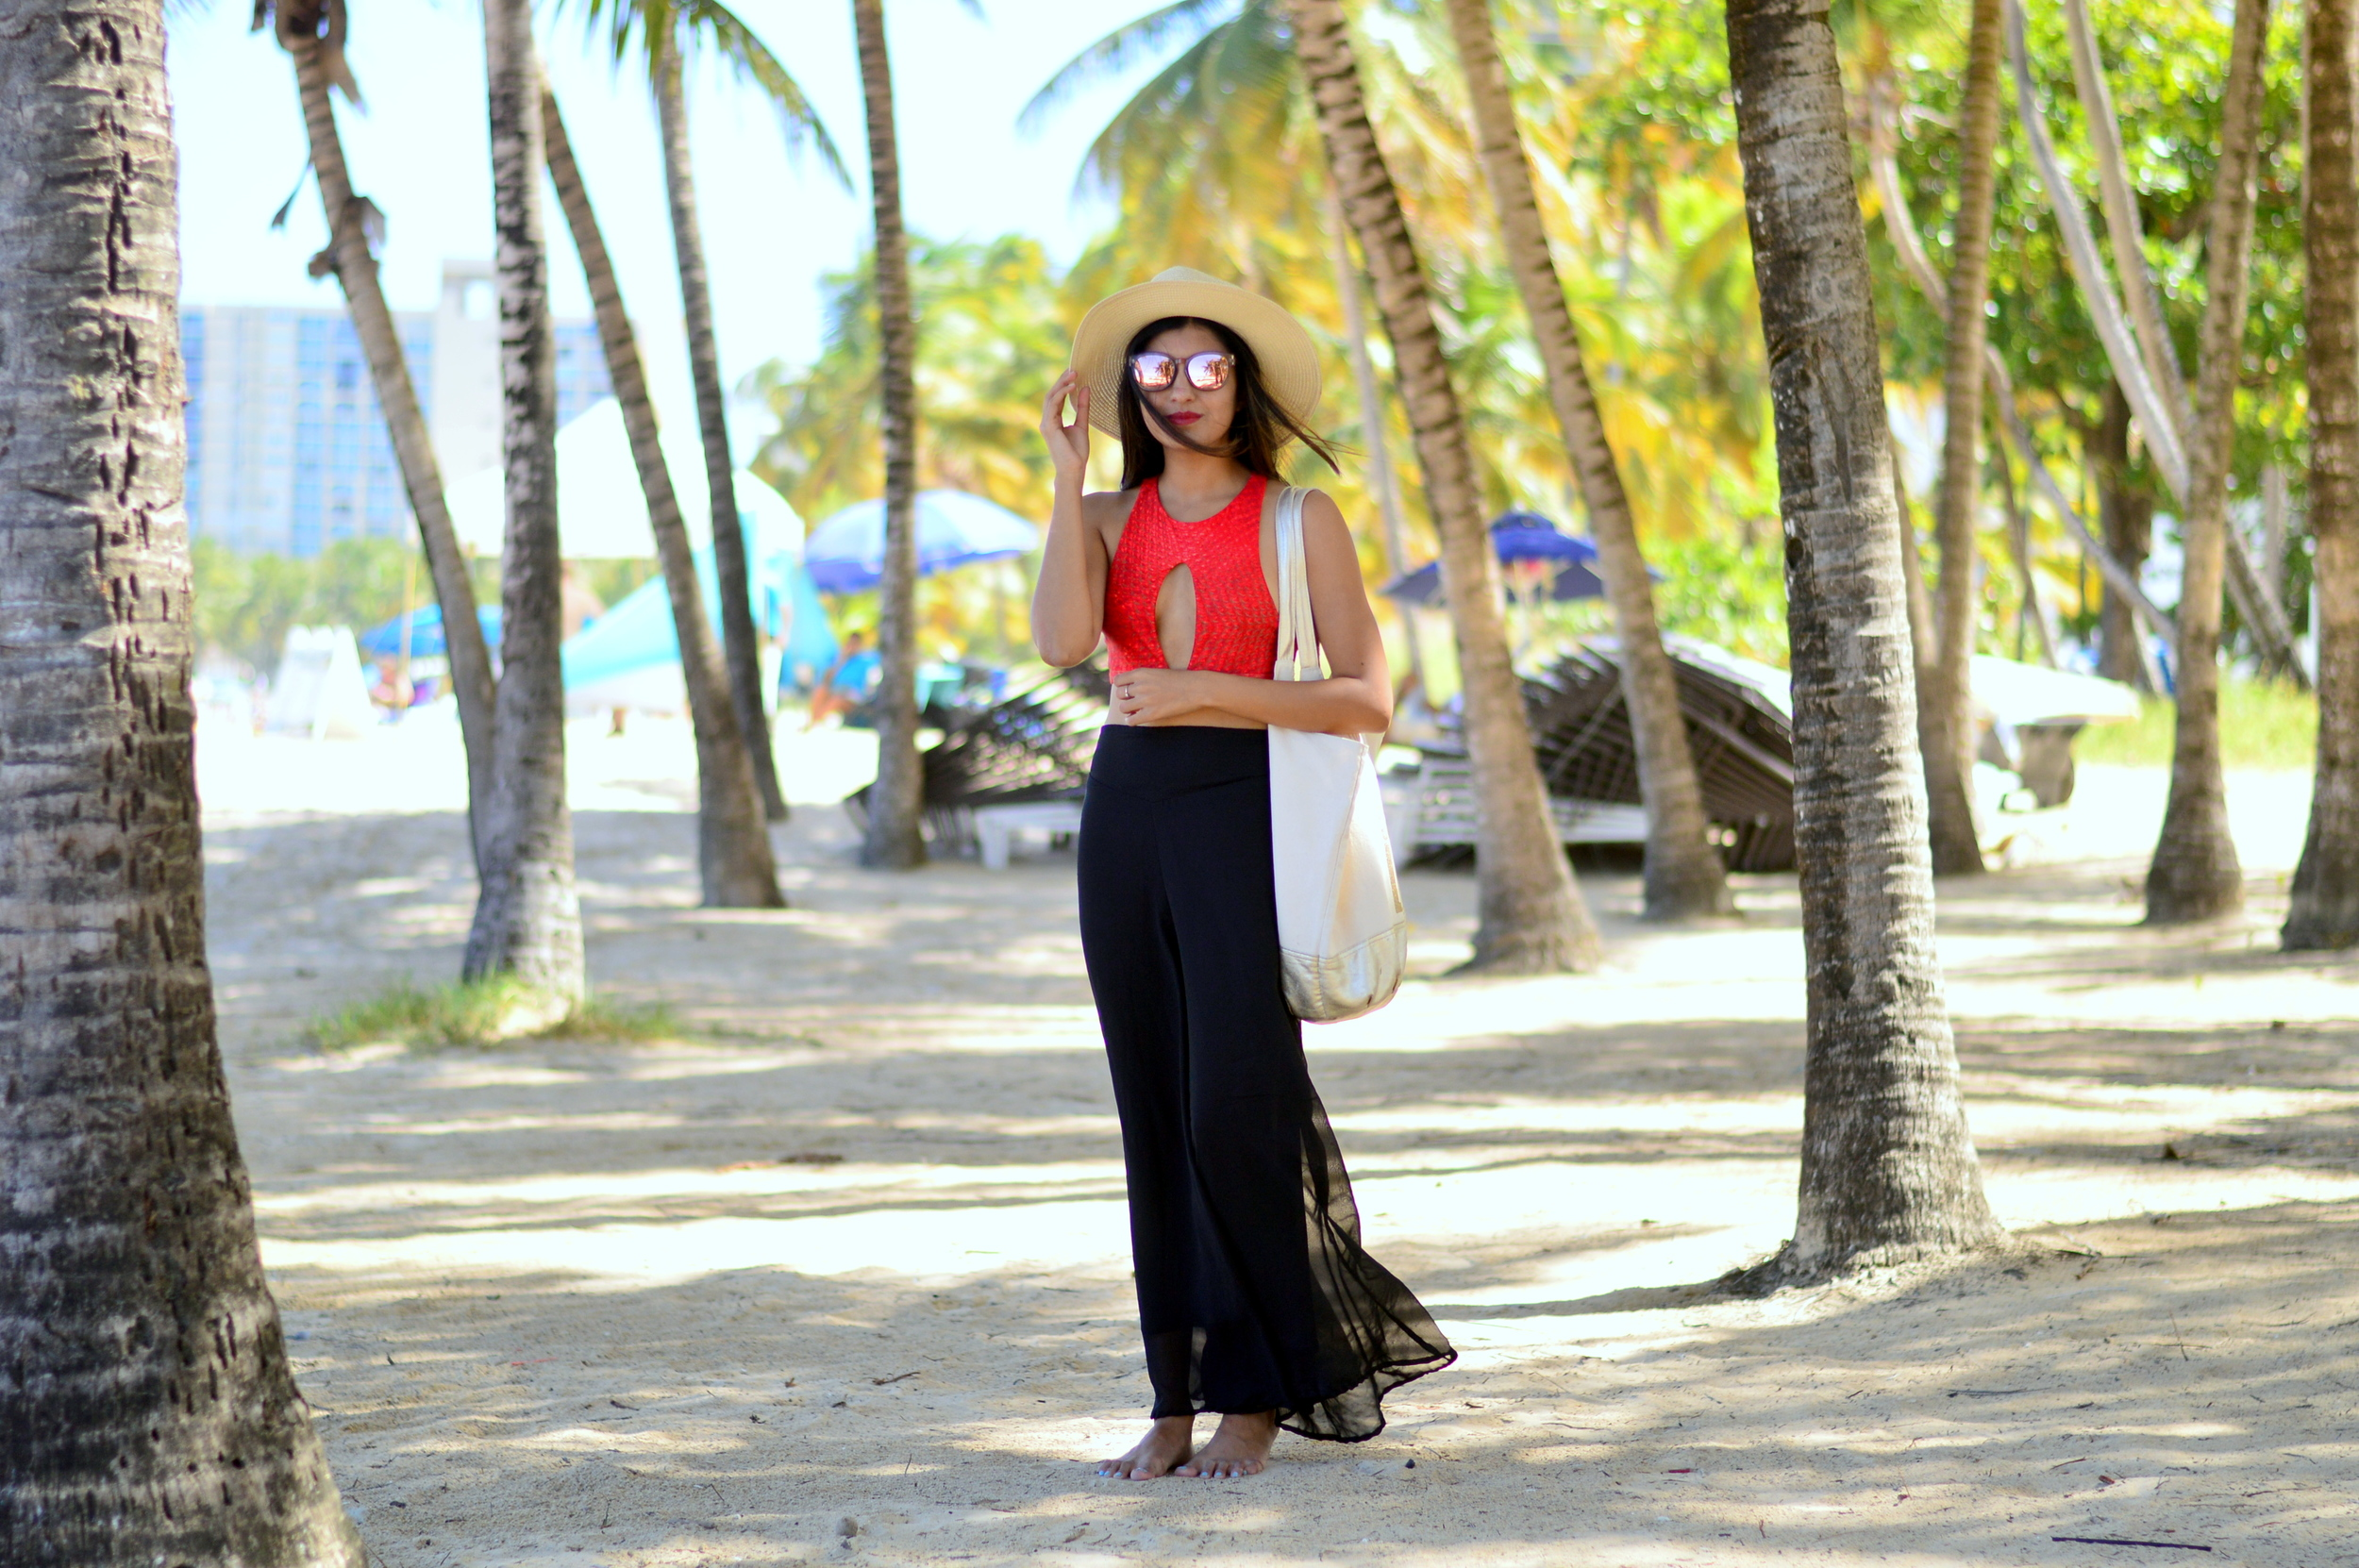 isla-verde-puerto-rico-beach-outfit-budget-travel-guide